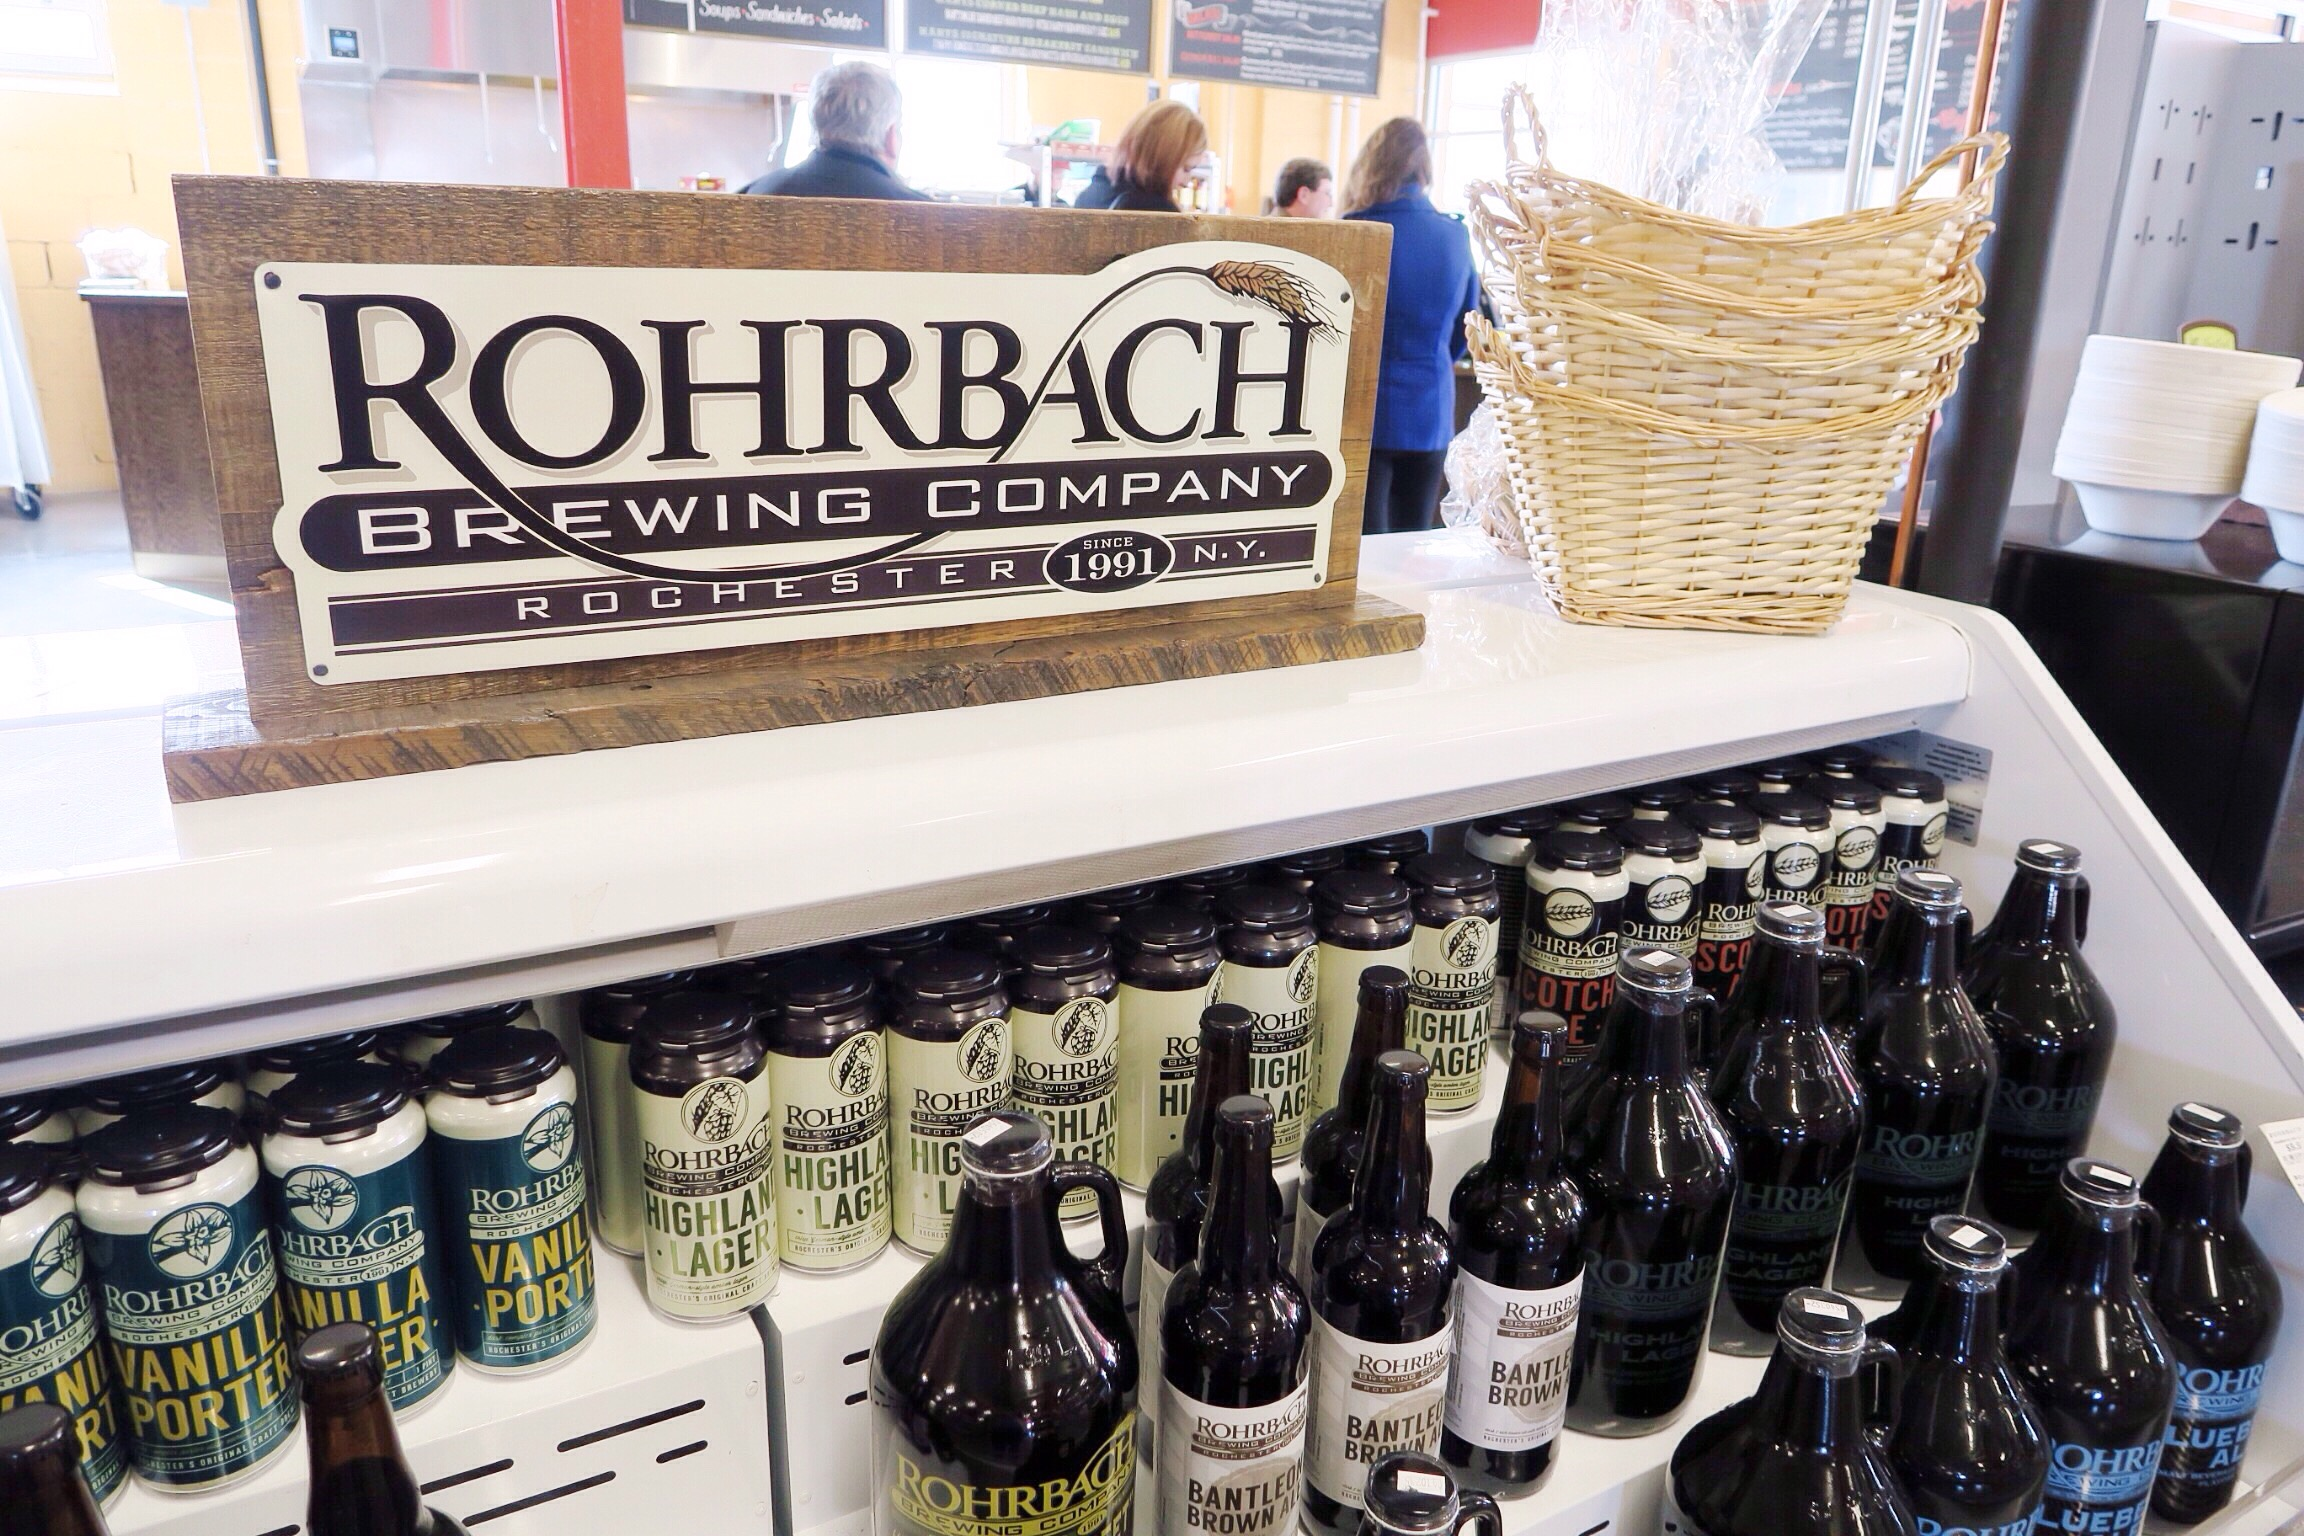 Rohrbach Brewing Company Handcrafted Ales and Lagers